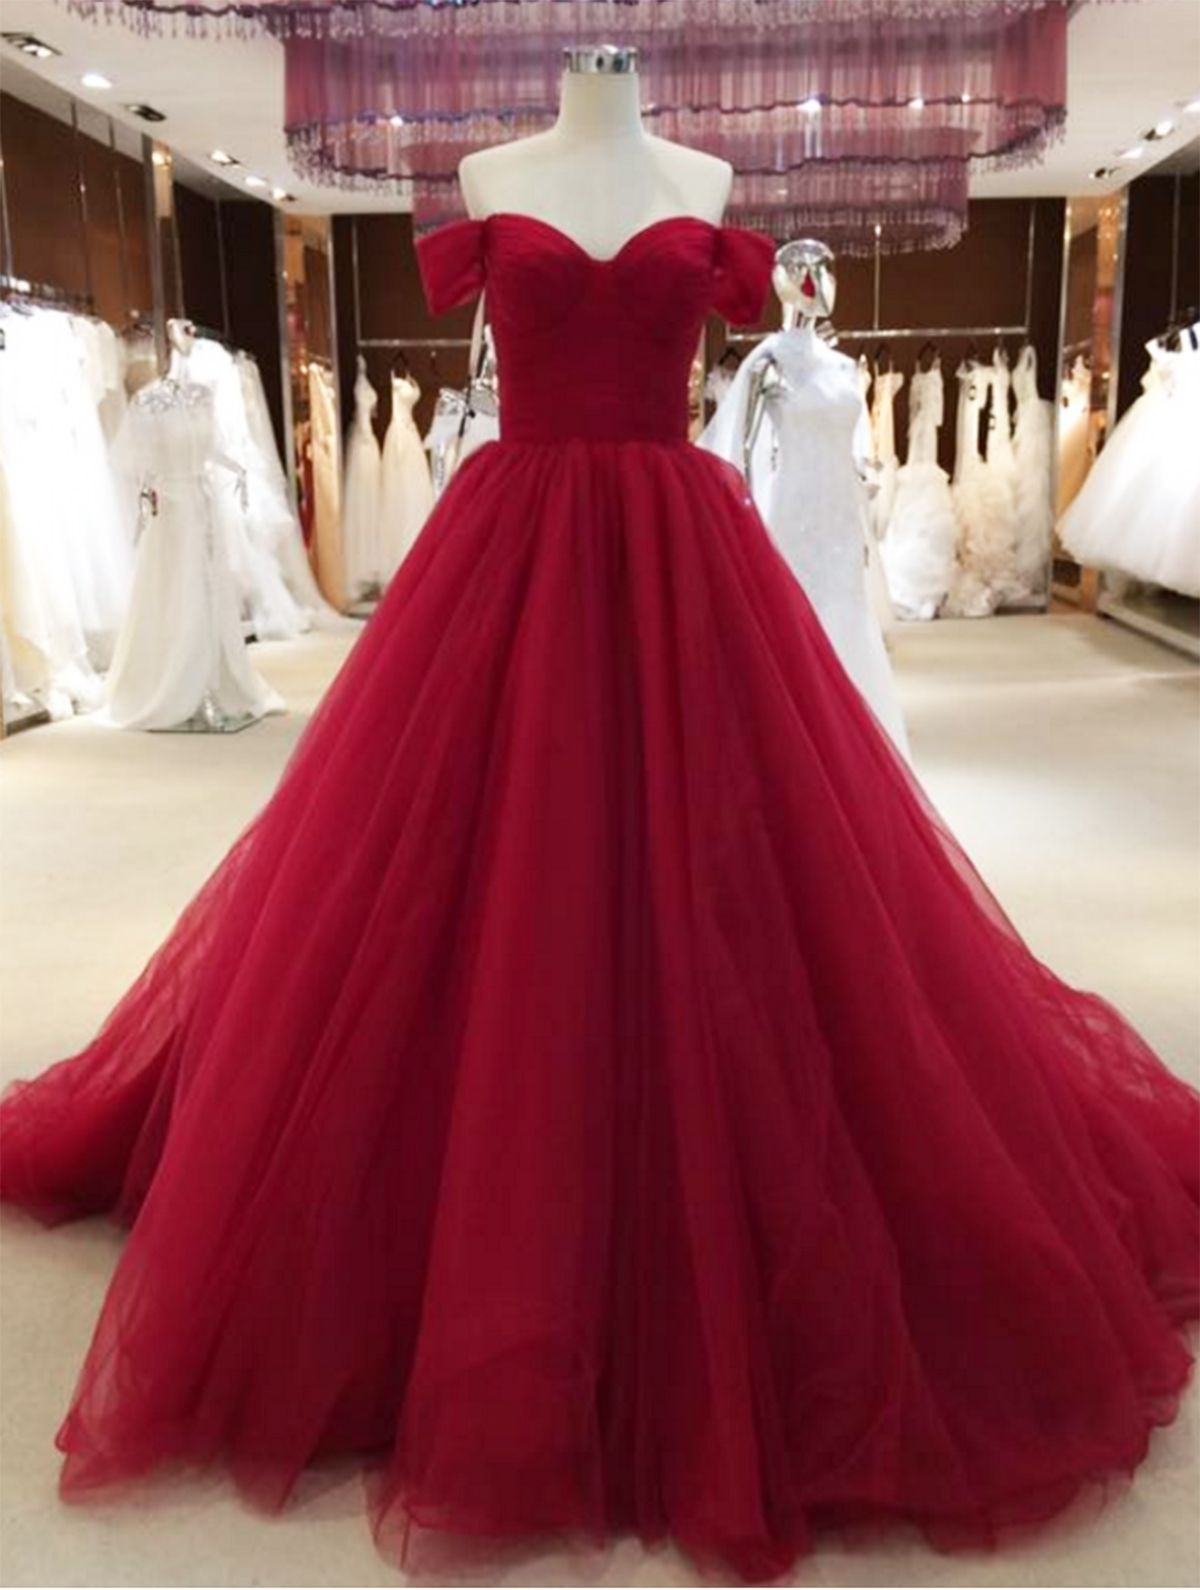 Simple Burgundy Tulle Long Sweetheart Neckline Evening Dress With Sleeves Prom Dresses With Sleeves Burgundy Prom Dress Gowns [ 1590 x 1200 Pixel ]